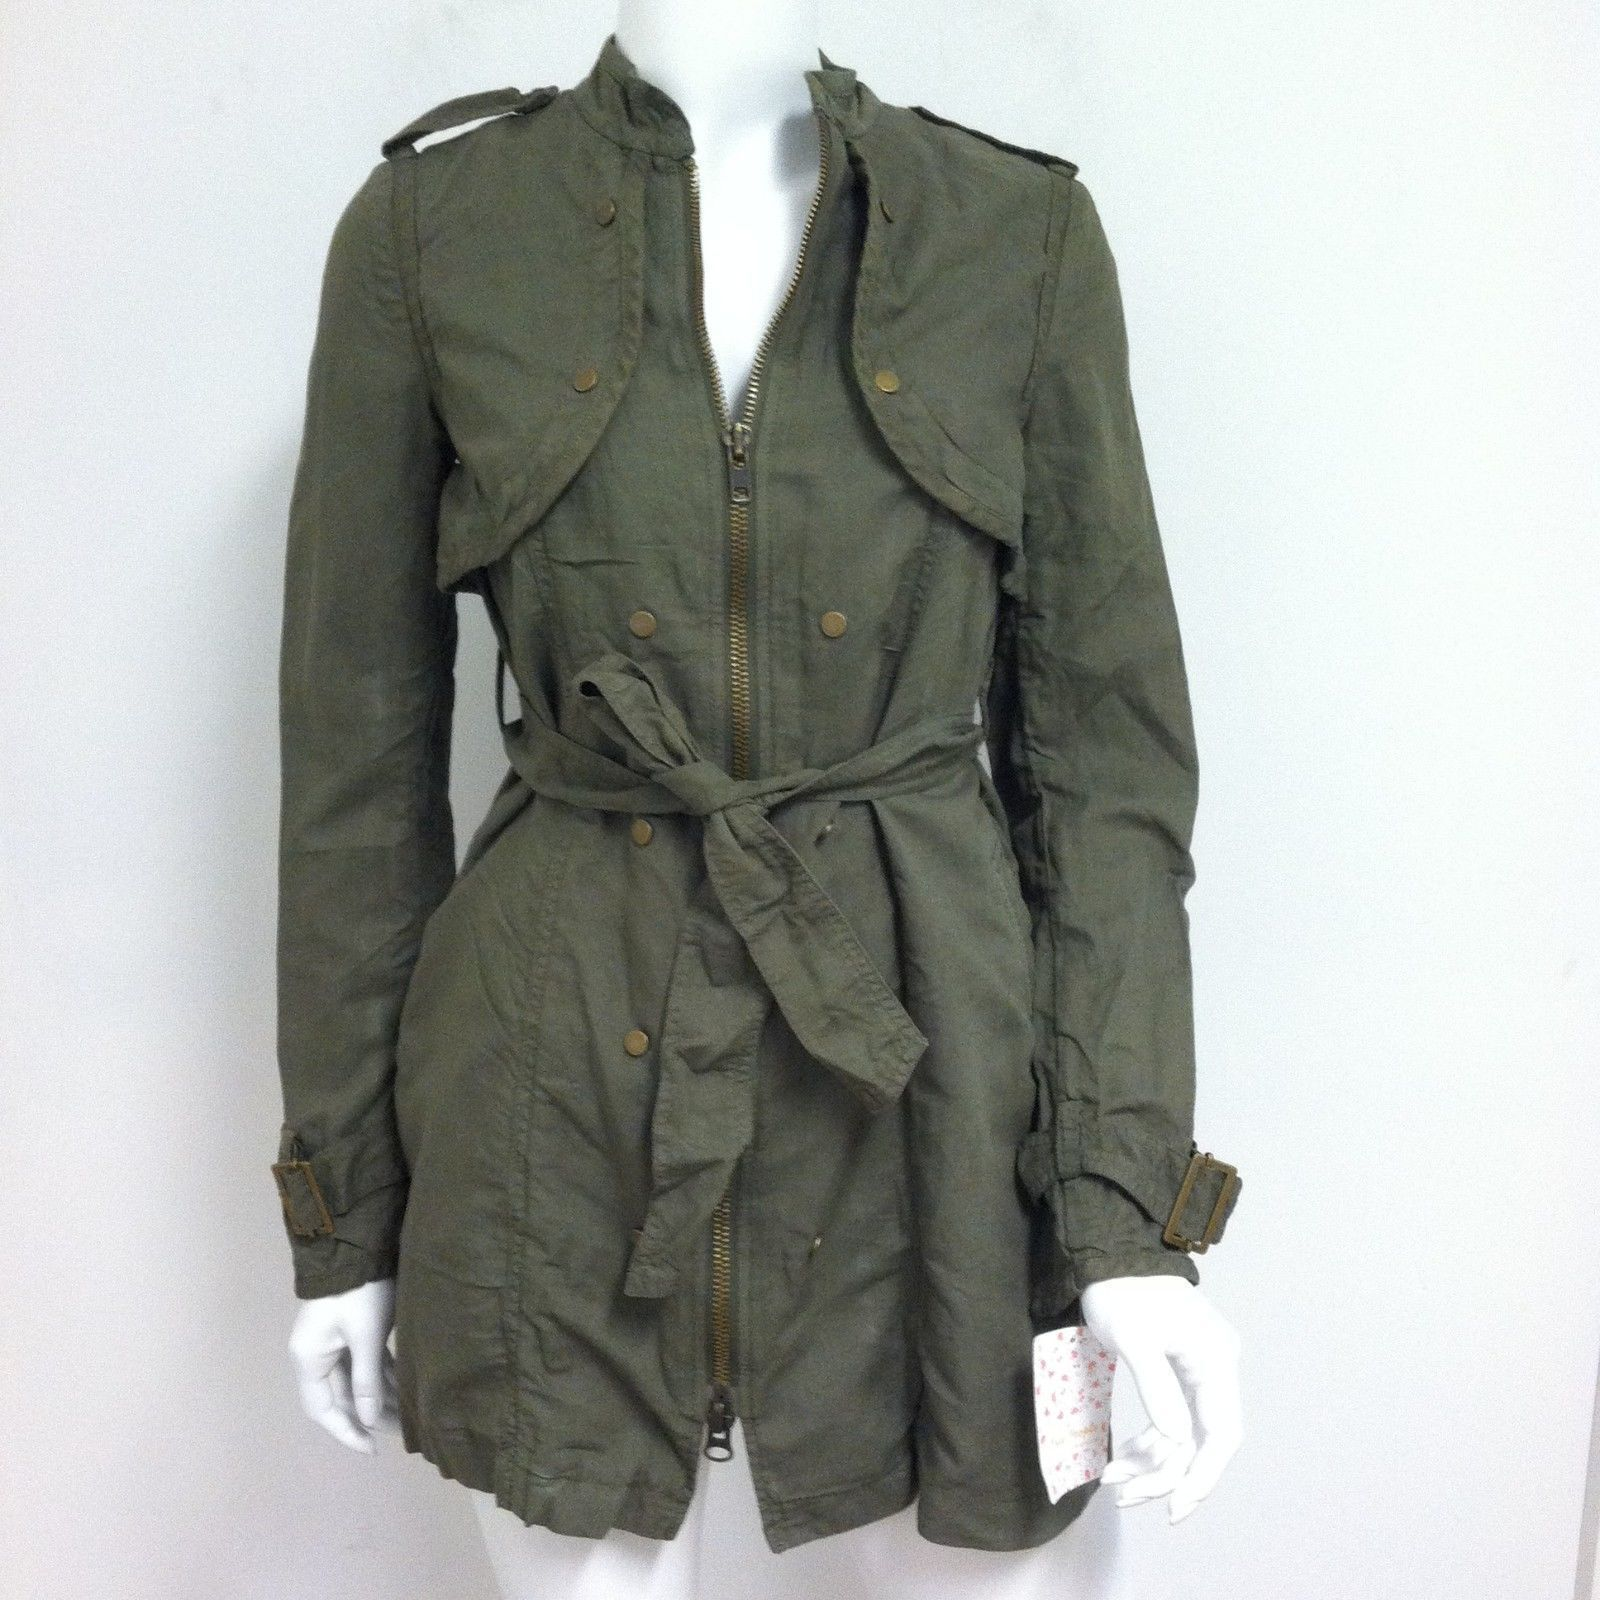 Free People Women S Military Jacket Long Belted Trench Coat Army Wash Size 0 For Sale Online